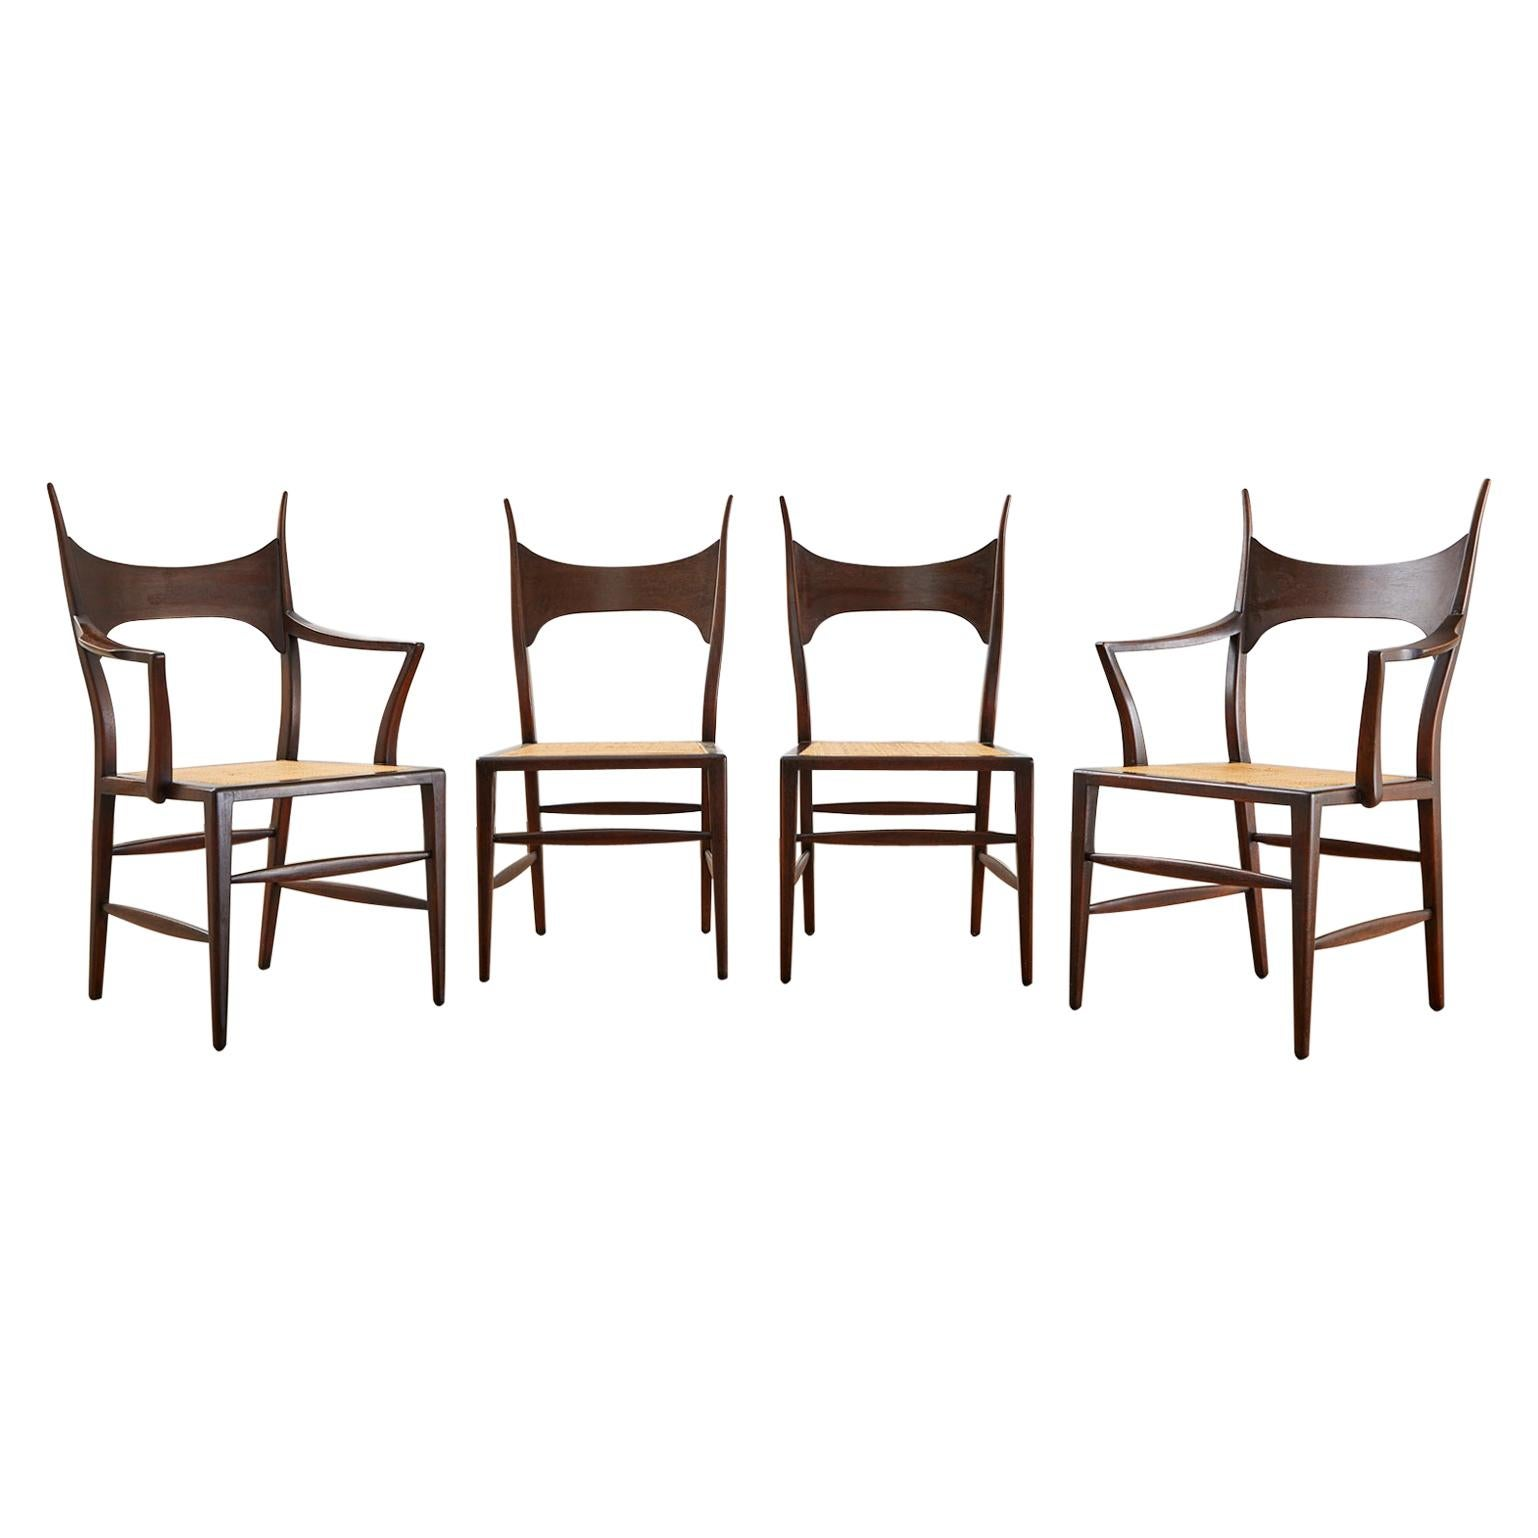 Set of Four Edward Wormley for Dunbar Horned Dining Chairs